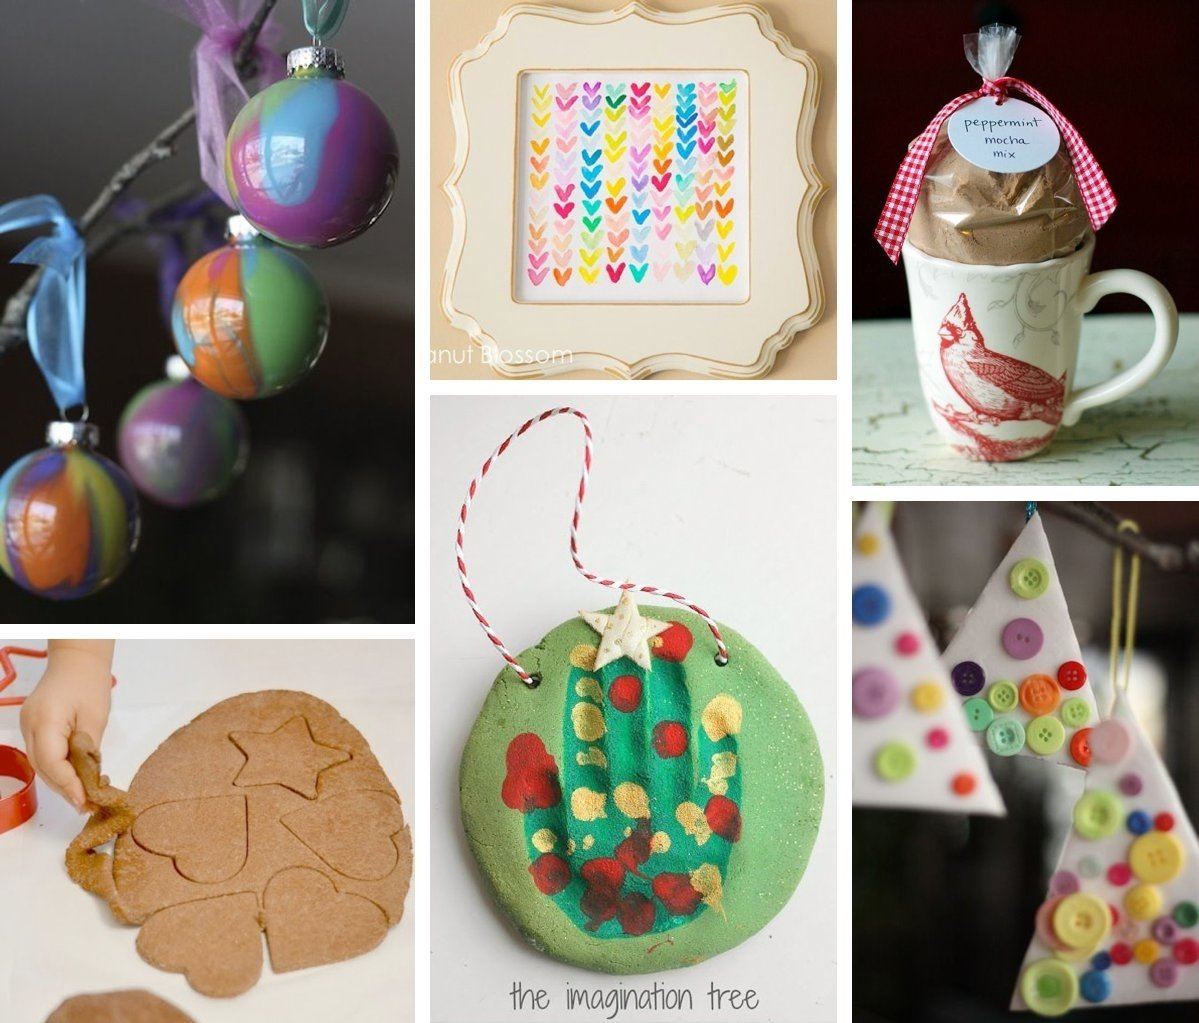 10 Most Popular Gift Ideas For Kids To Make diy holiday gifts kids can help make 4 2020